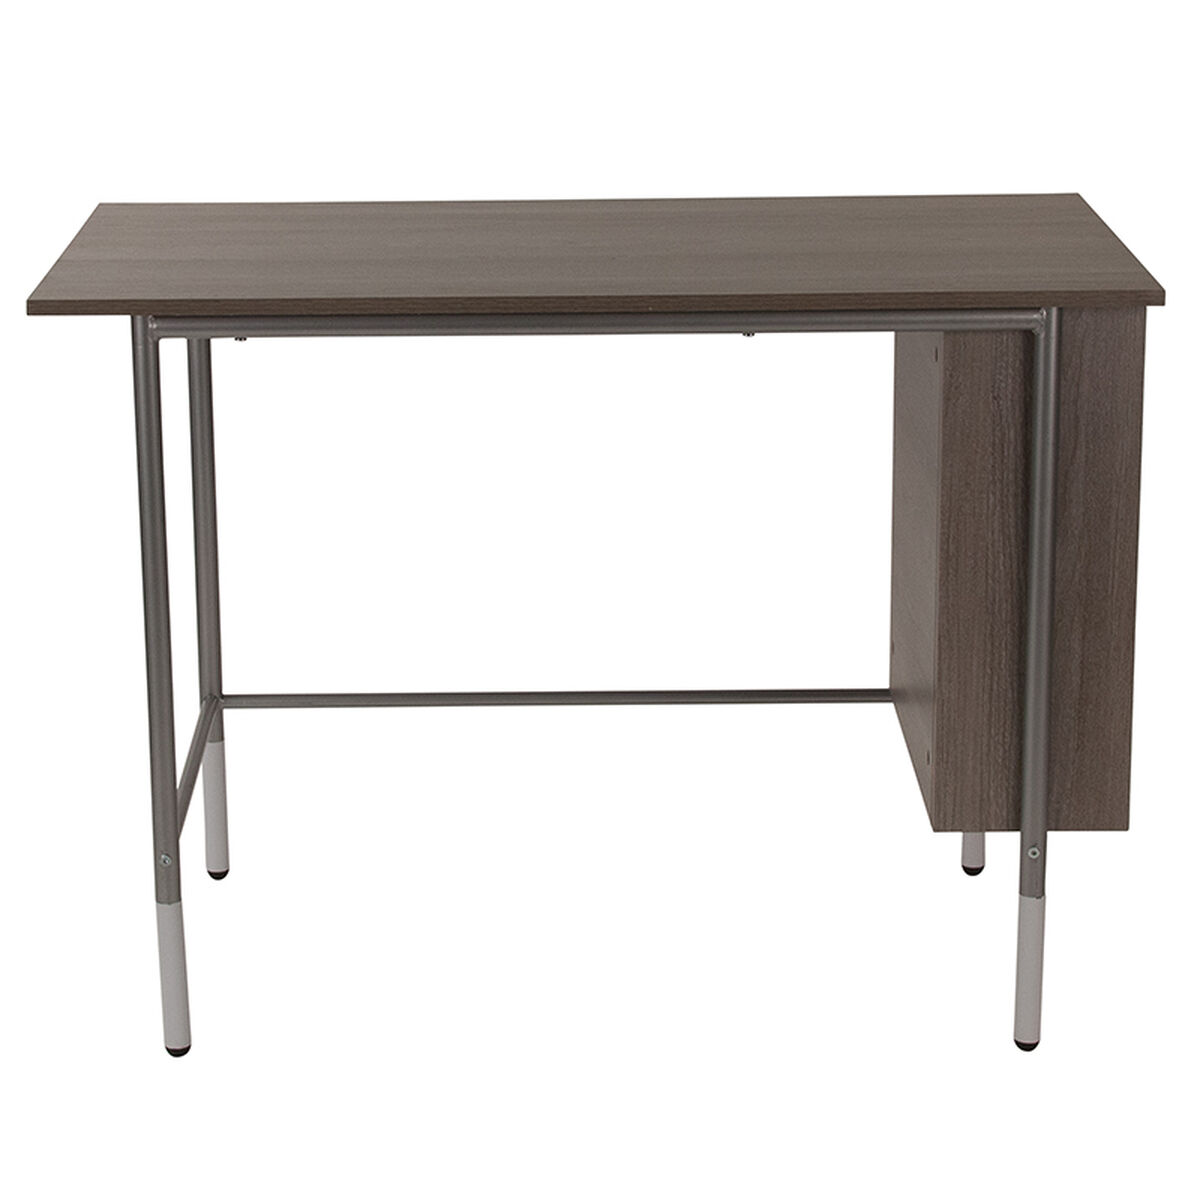 Our Hillside Light Applewood Finish Computer Desk With Side Storage Shelves Is On Now